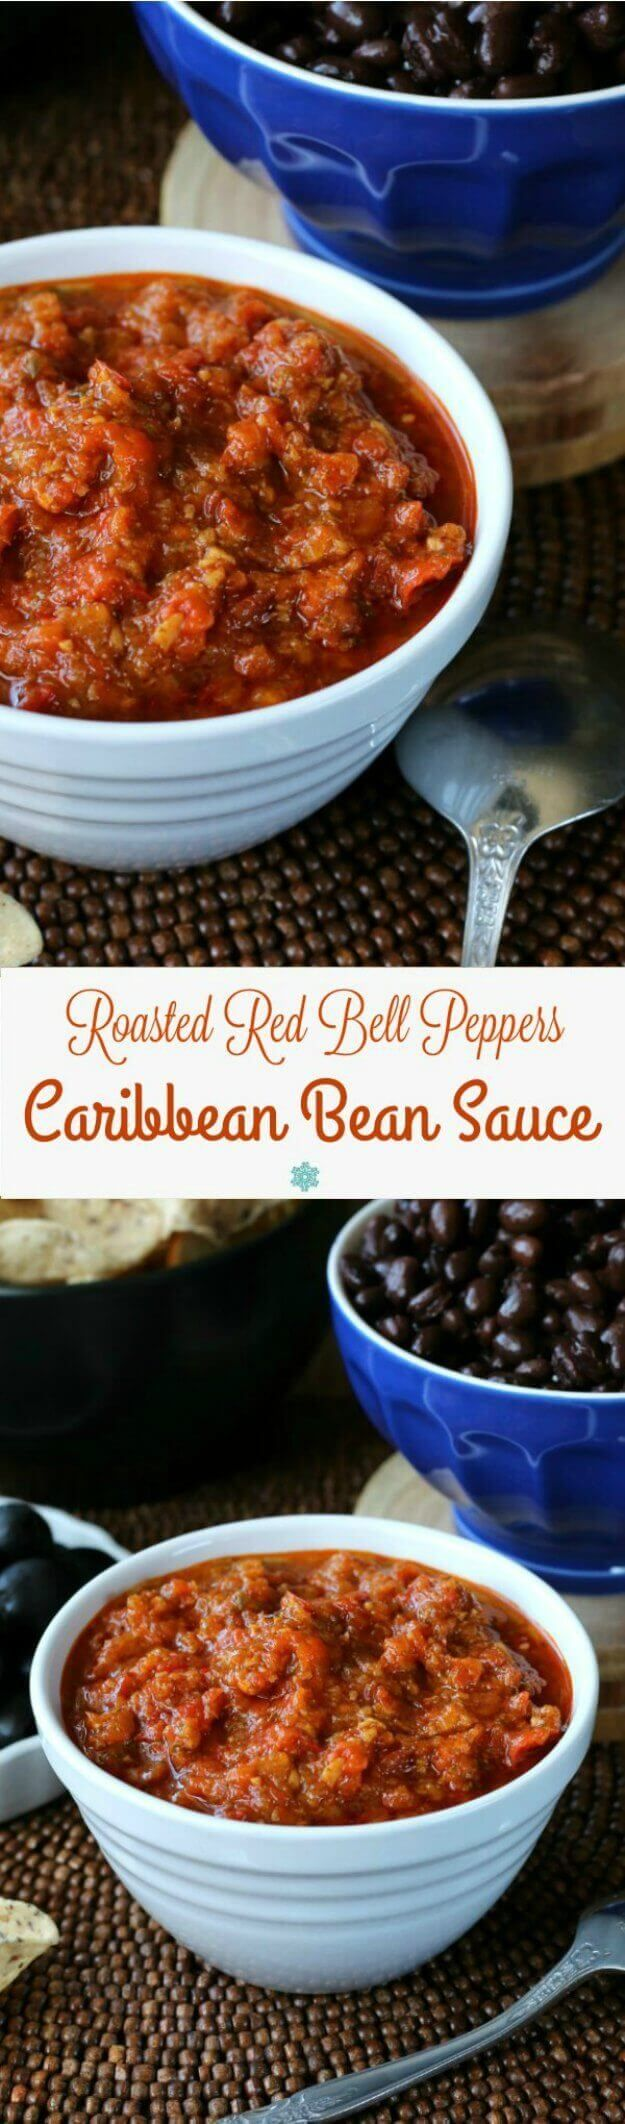 Roasted Red Bell Peppers Caribbean Bean Sauce is so unusual but a must have for your condiment list. Traditionally served with beans but is a great dip too. ~ http://veganinthefreezer.com